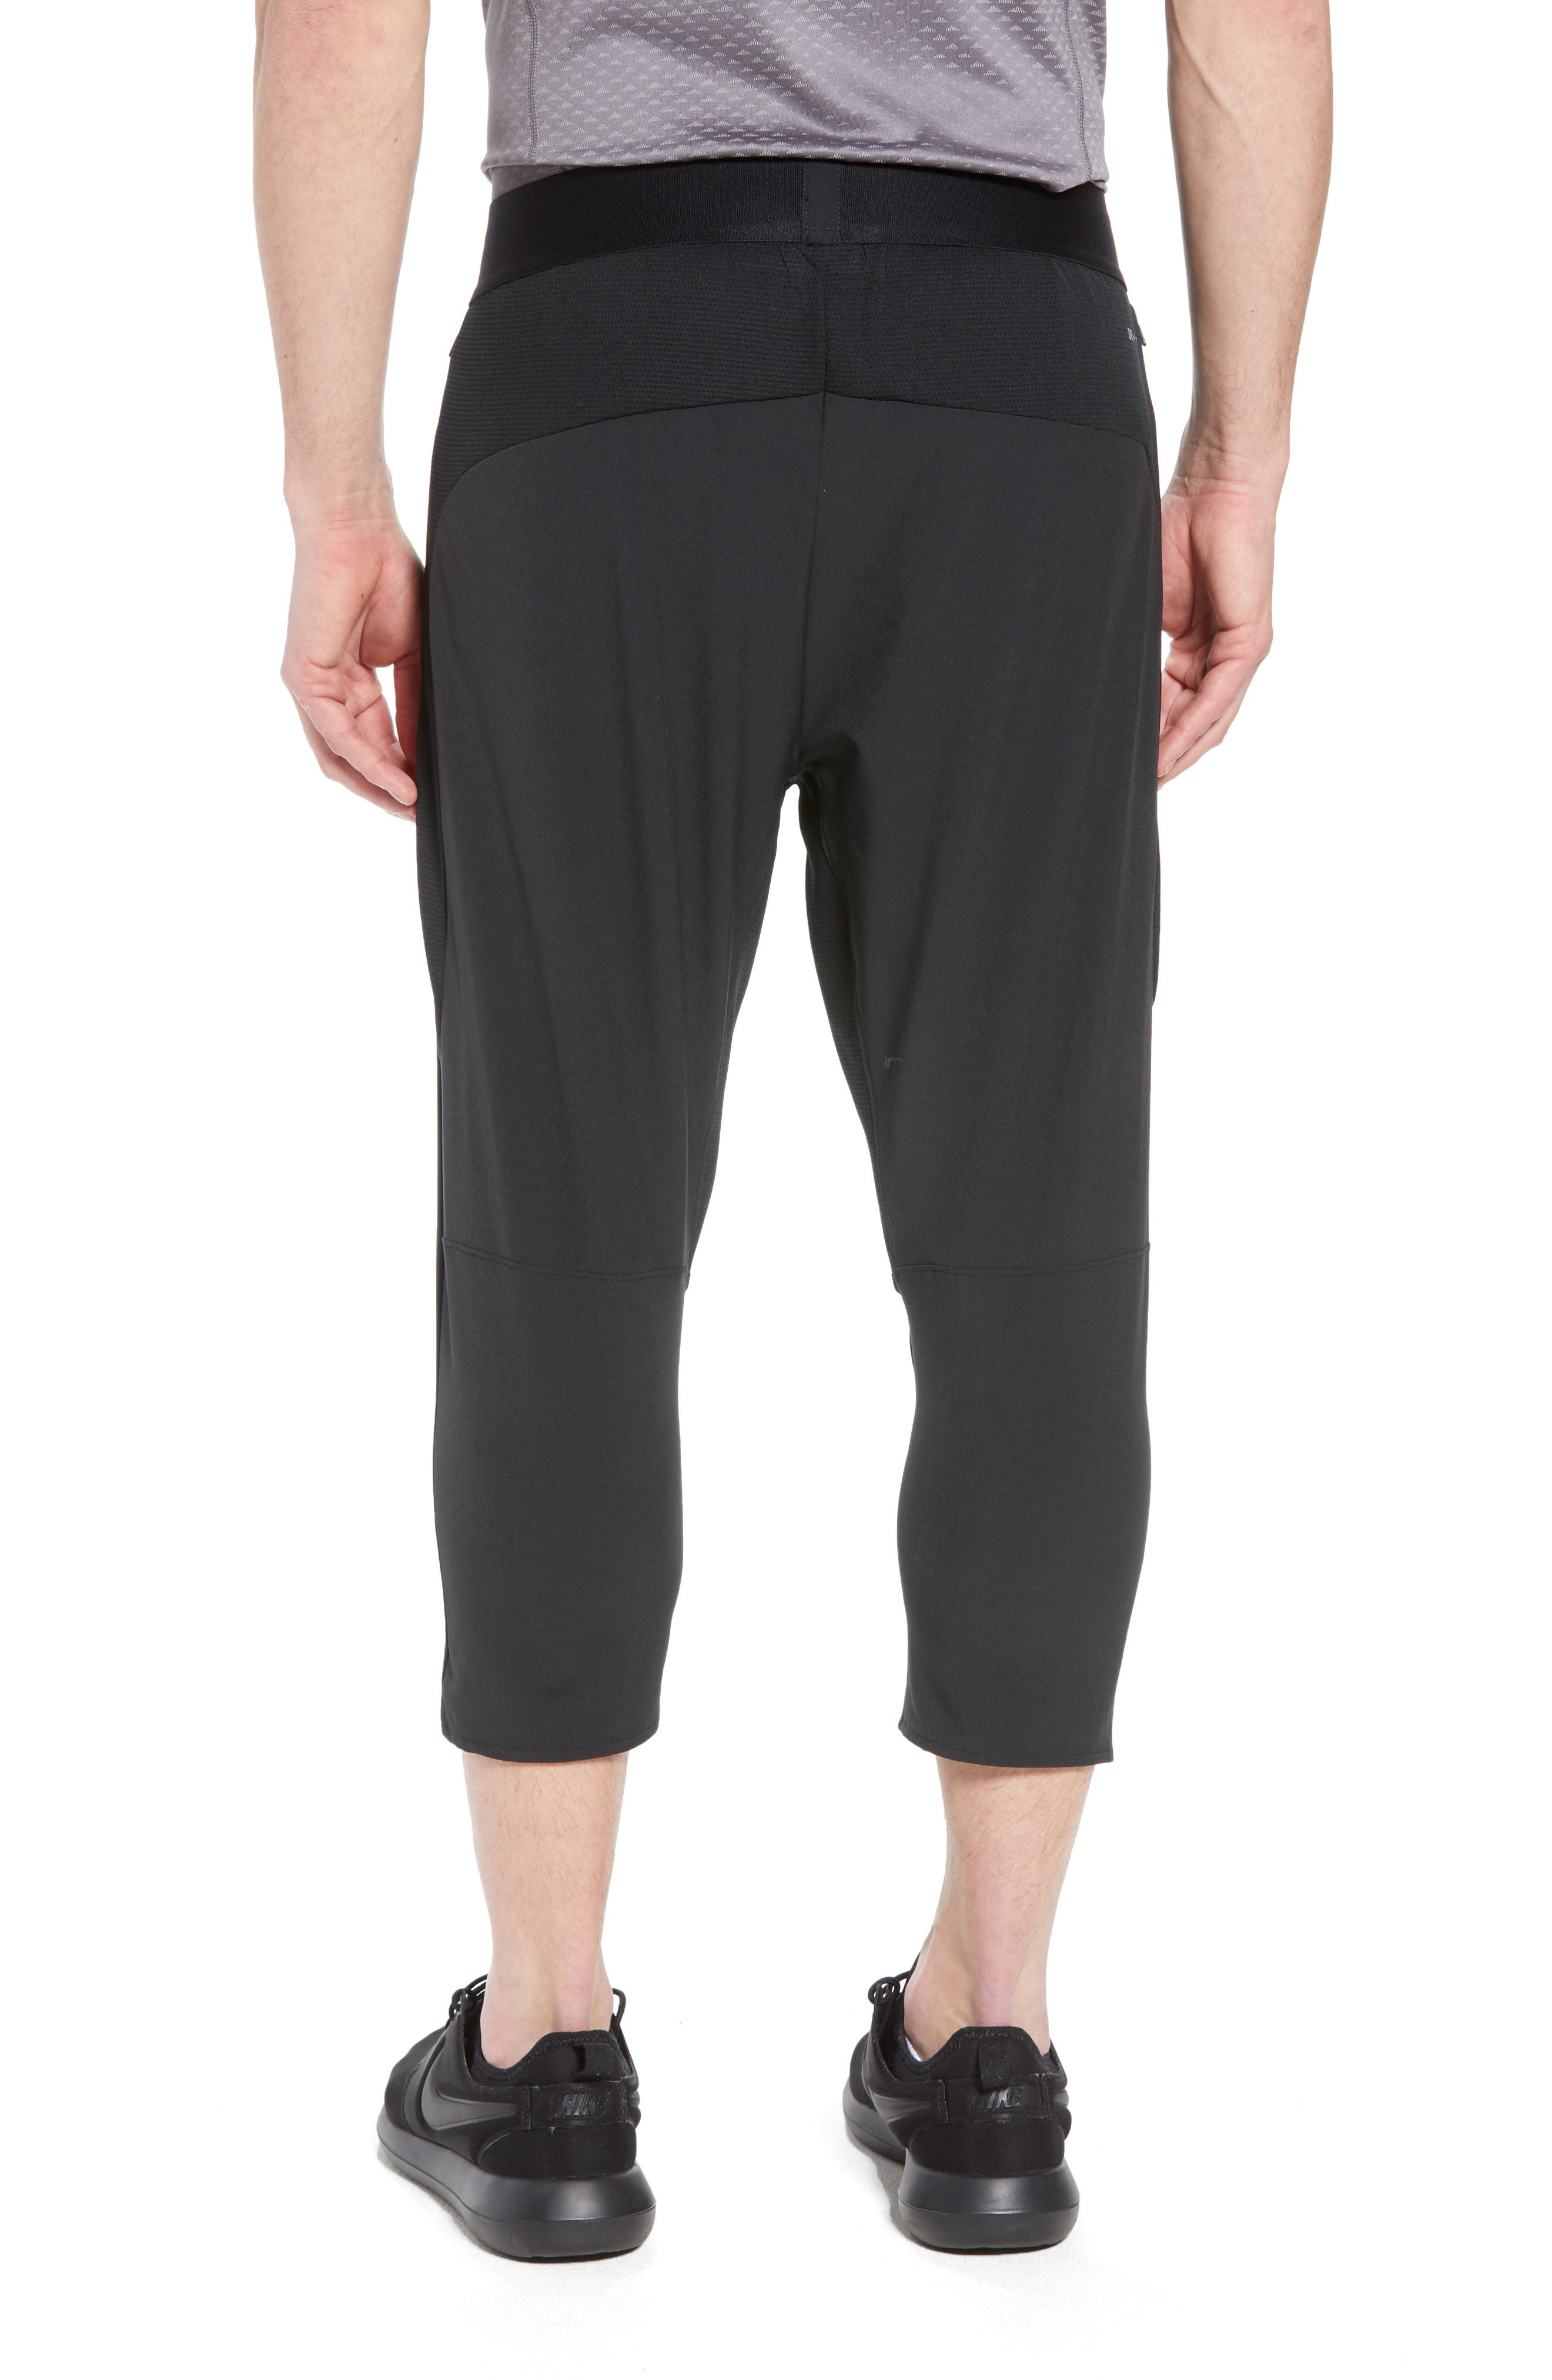 Ult Flight Pants,                             Alternate thumbnail 2, color,                             Black/ Black